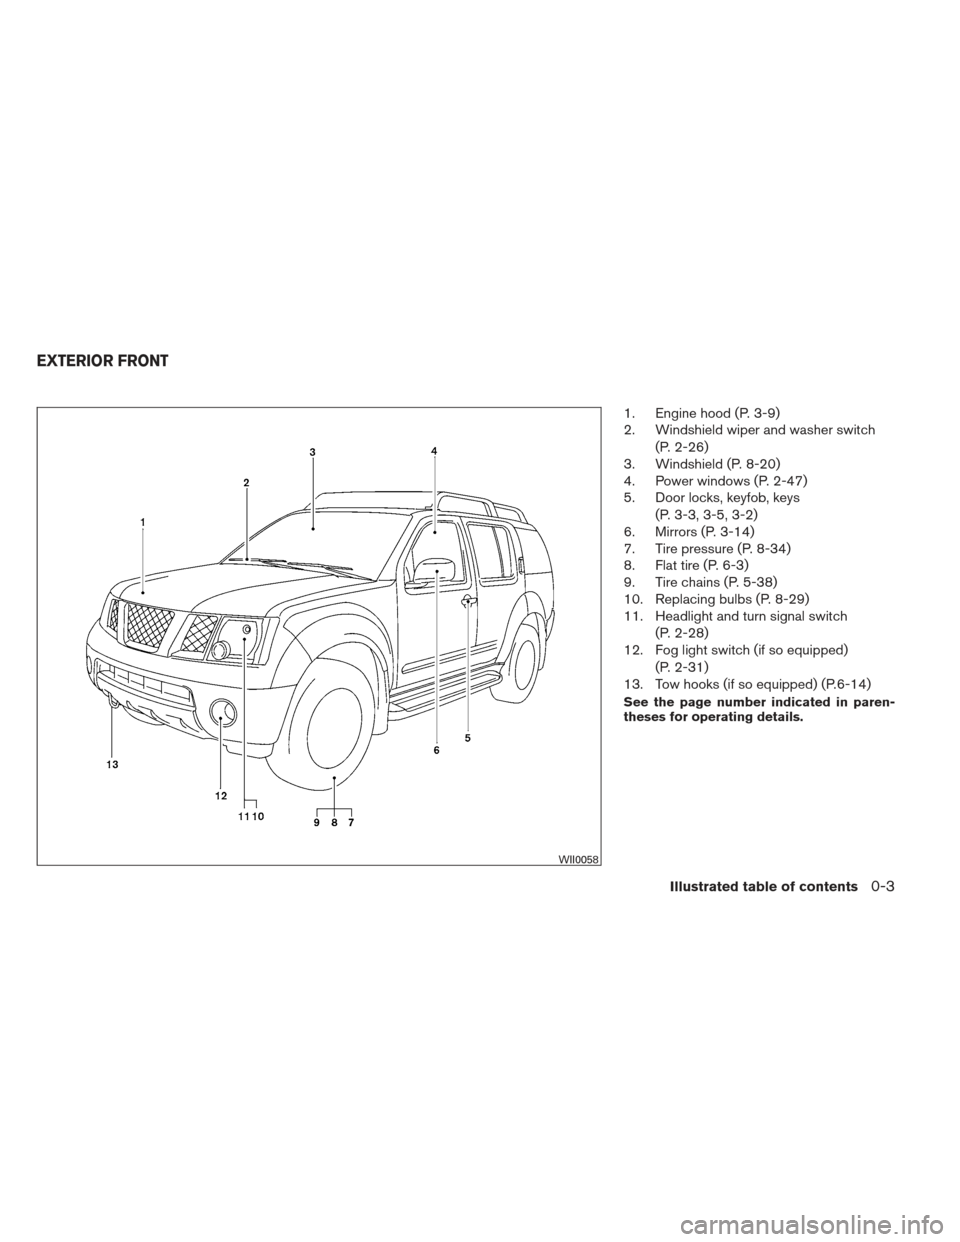 NISSAN XTERRA 2013 N50 / 2.G Owners Manual 1. Engine hood (P. 3-9) 2. Windshield wiper and washer switch(P. 2-26) 3. Windshield (P. 8-20) 4. Power windows (P. 2-47) 5. Door locks, keyfob, keys (P. 3-3, 3-5, 3-2) 6. Mirrors (P. 3-14) 7. Tire pr